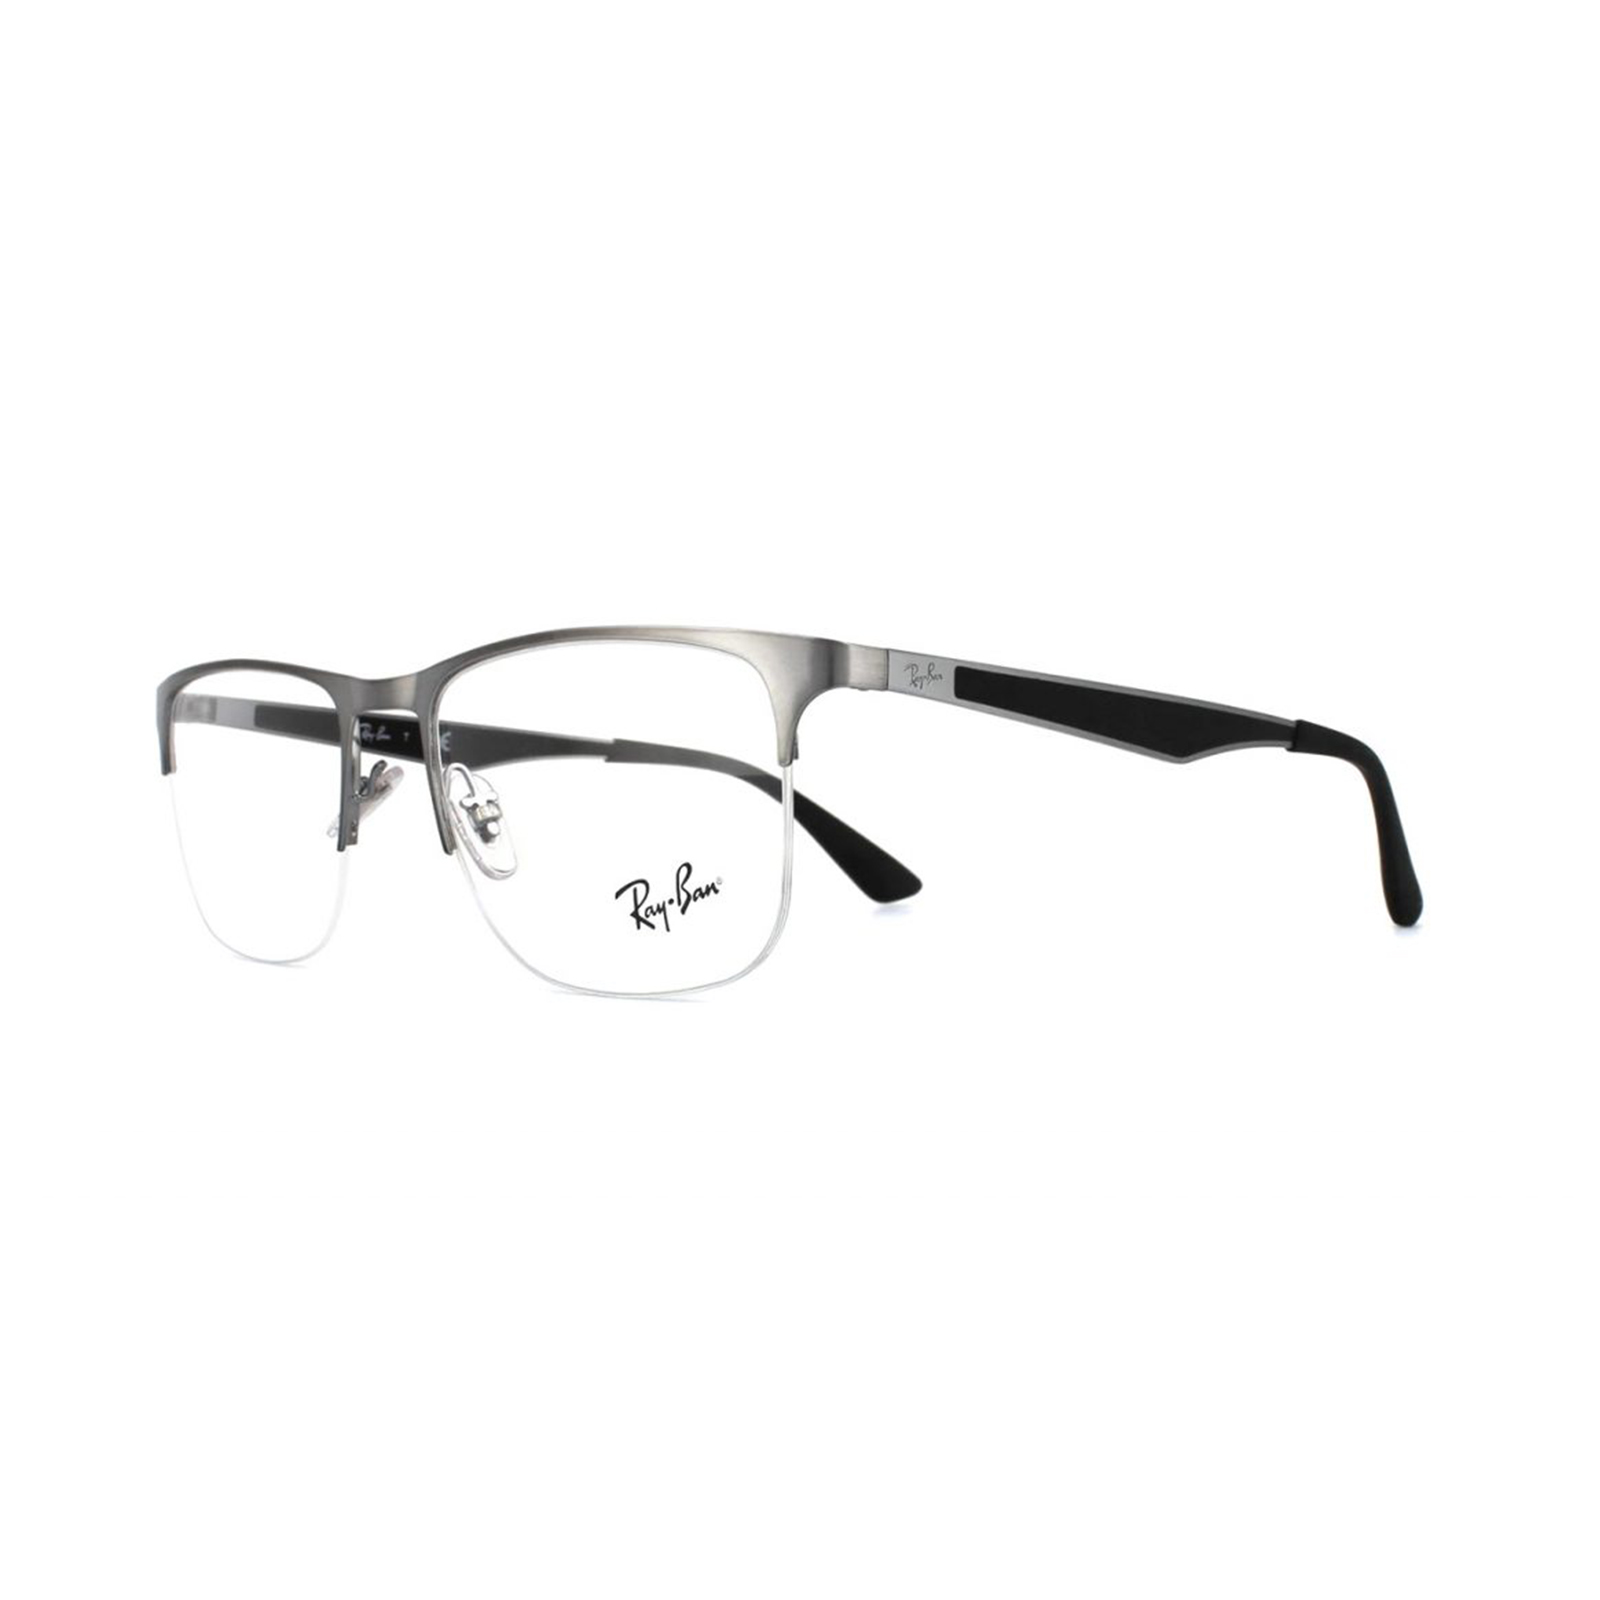 Ray-Ban Glasses Frames RX 6362 2502 Shiny Gunmetal Mens 55mm ...